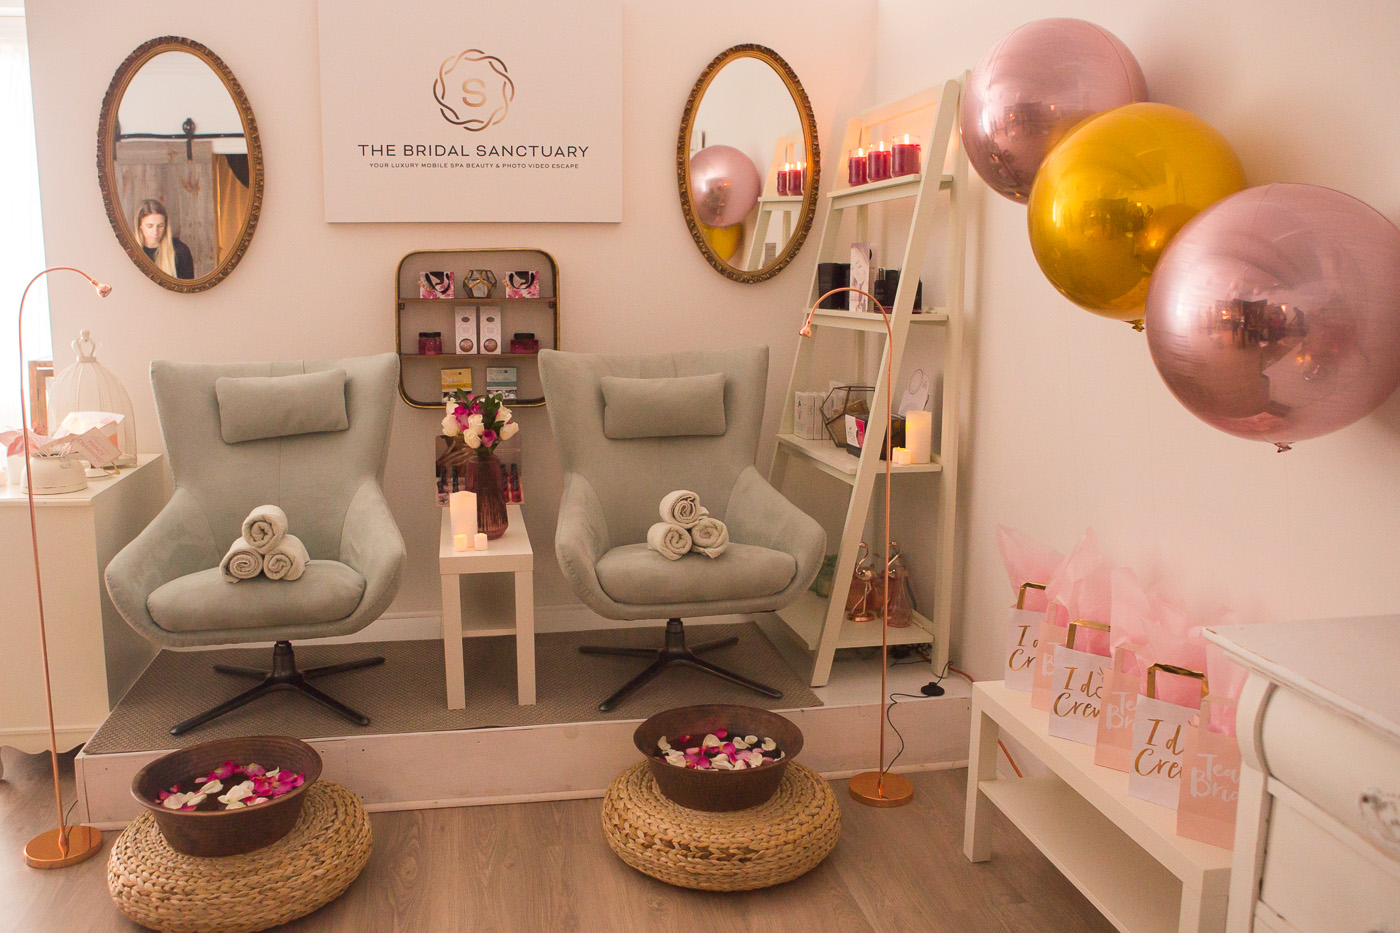 the-bridal-sanctuary-montreal-spa-party-3.jpg